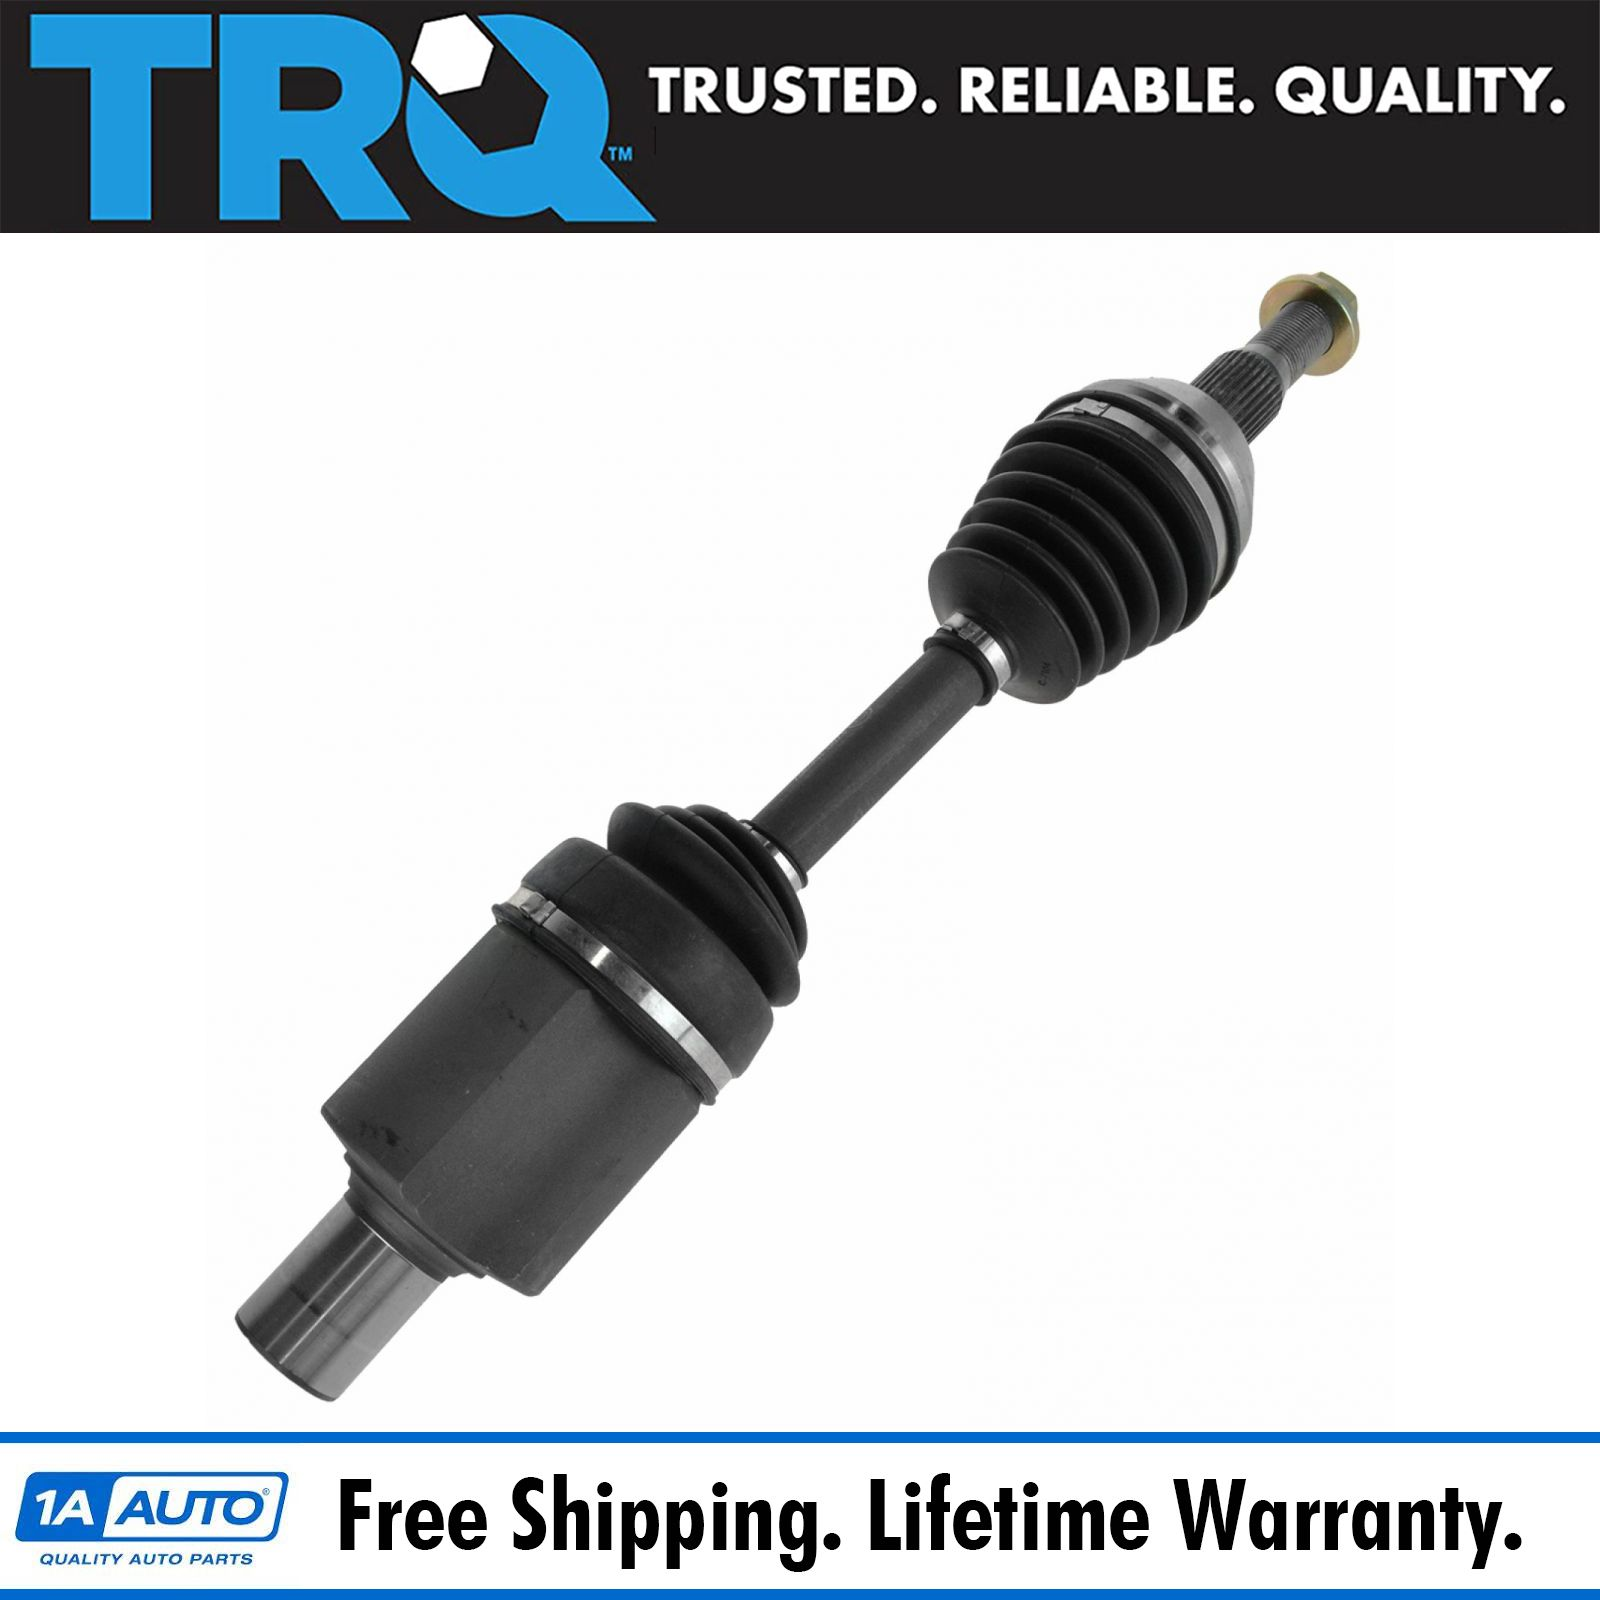 Trq New Cv Joint Axle Assembly Front Lh Or Rh For Lucerne Dts Aurora 1978 Cadillac Deville Rockauto 1aacv00155